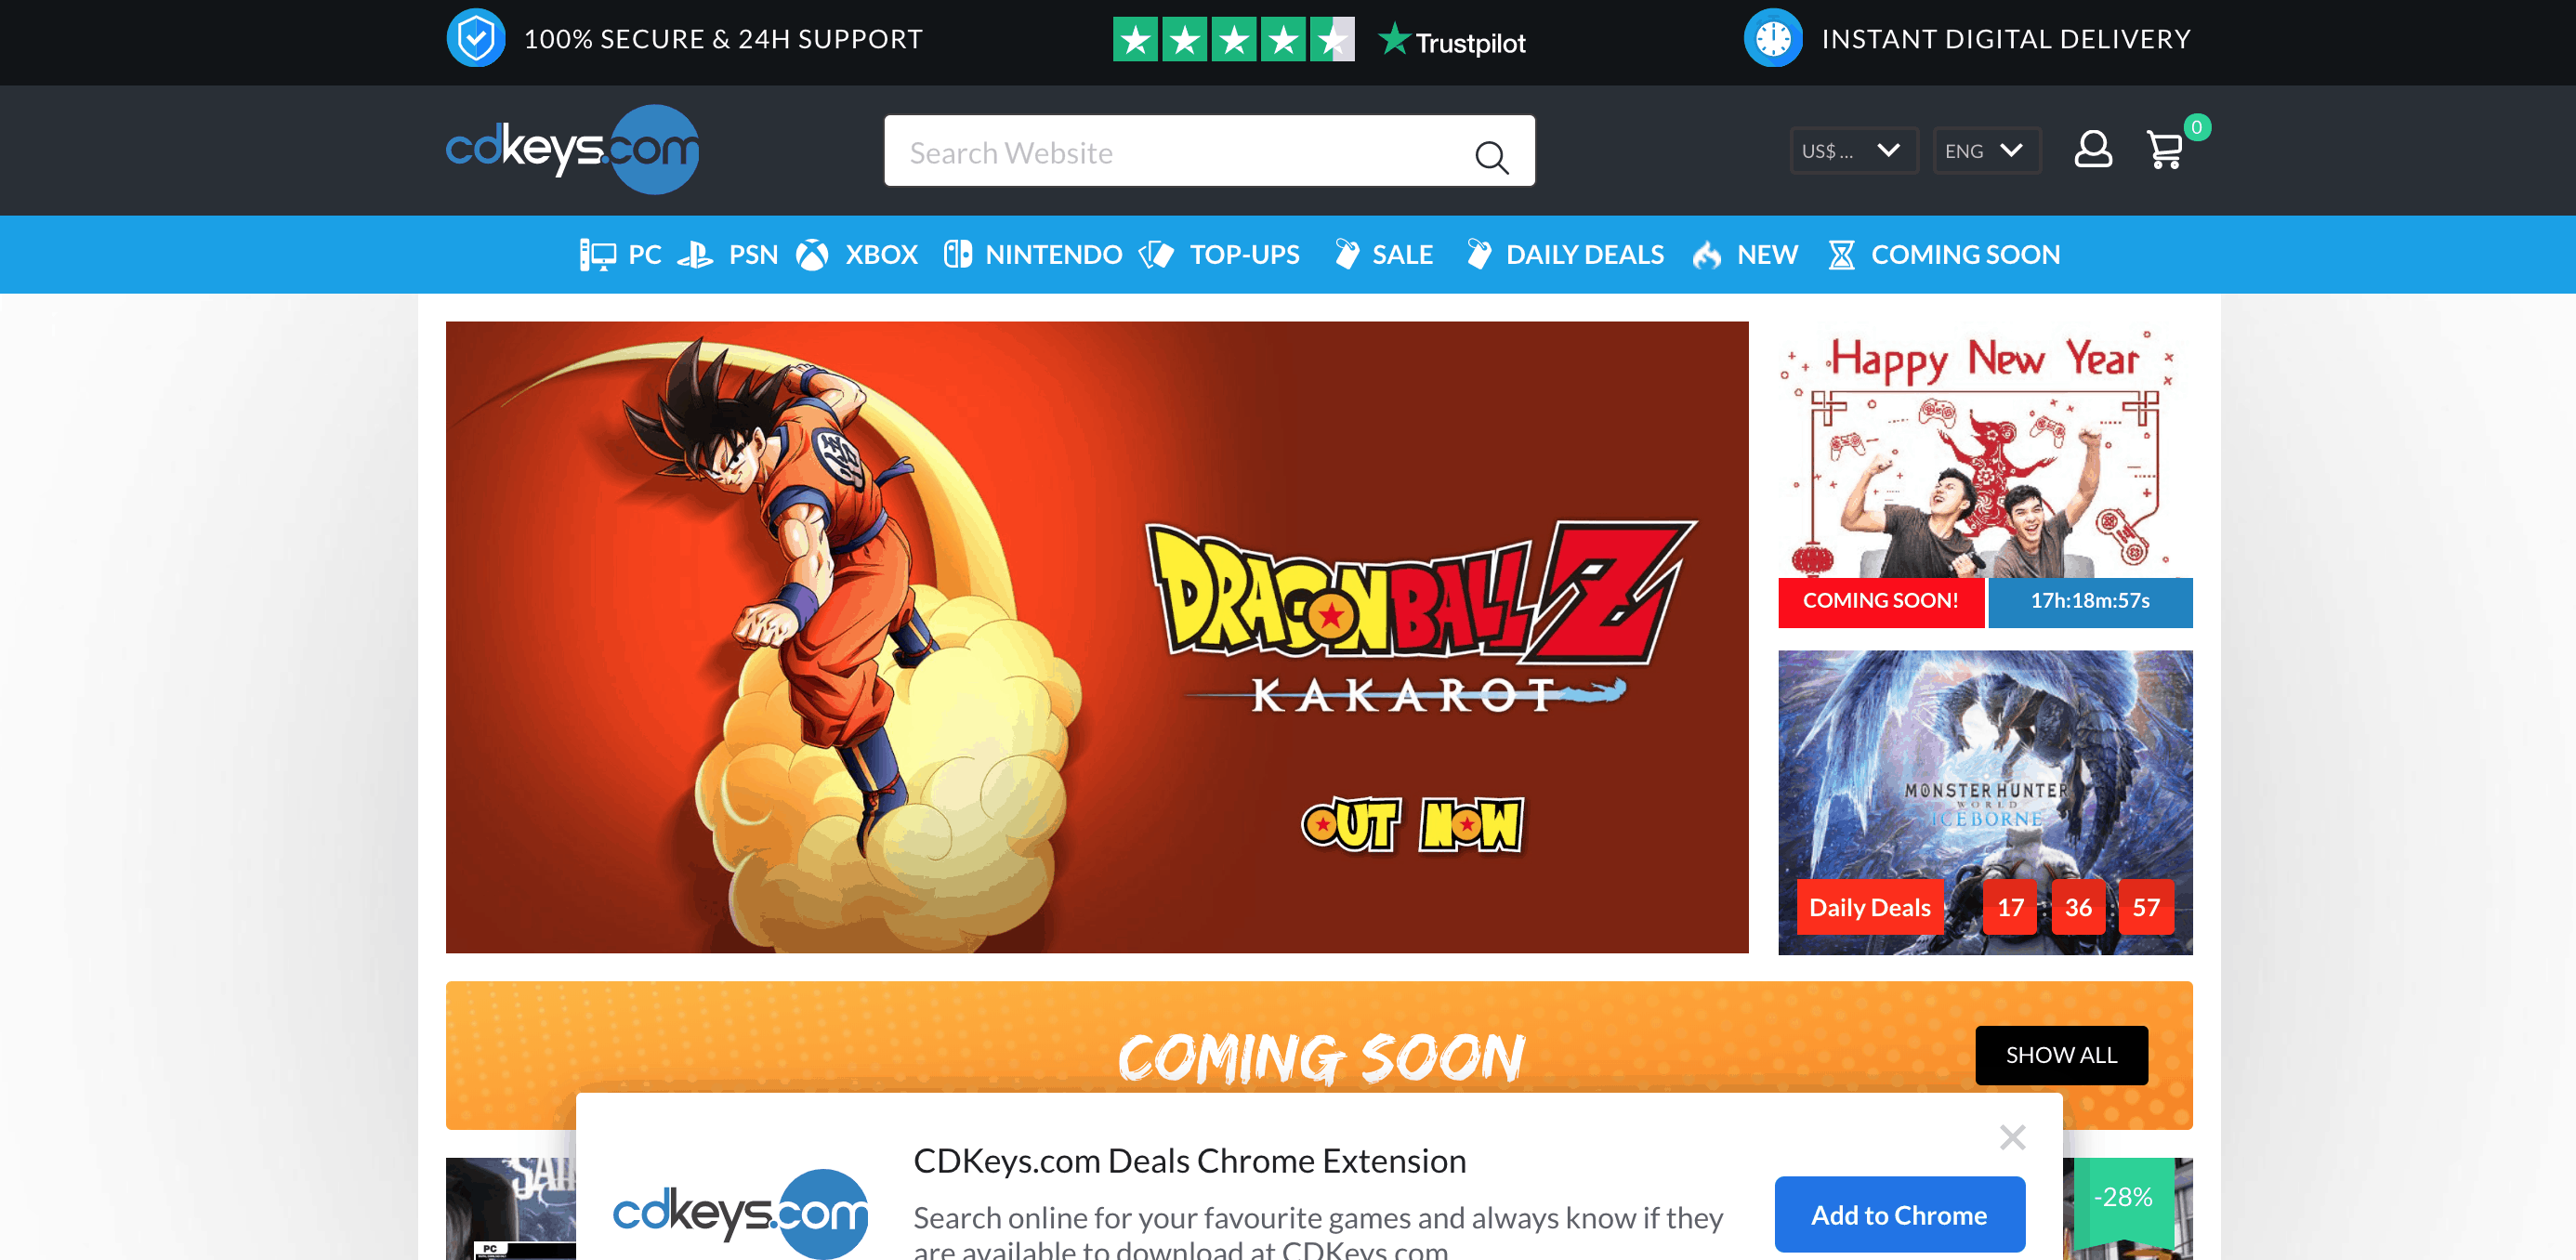 CDkeys homepage featuring Dragon Ball Z